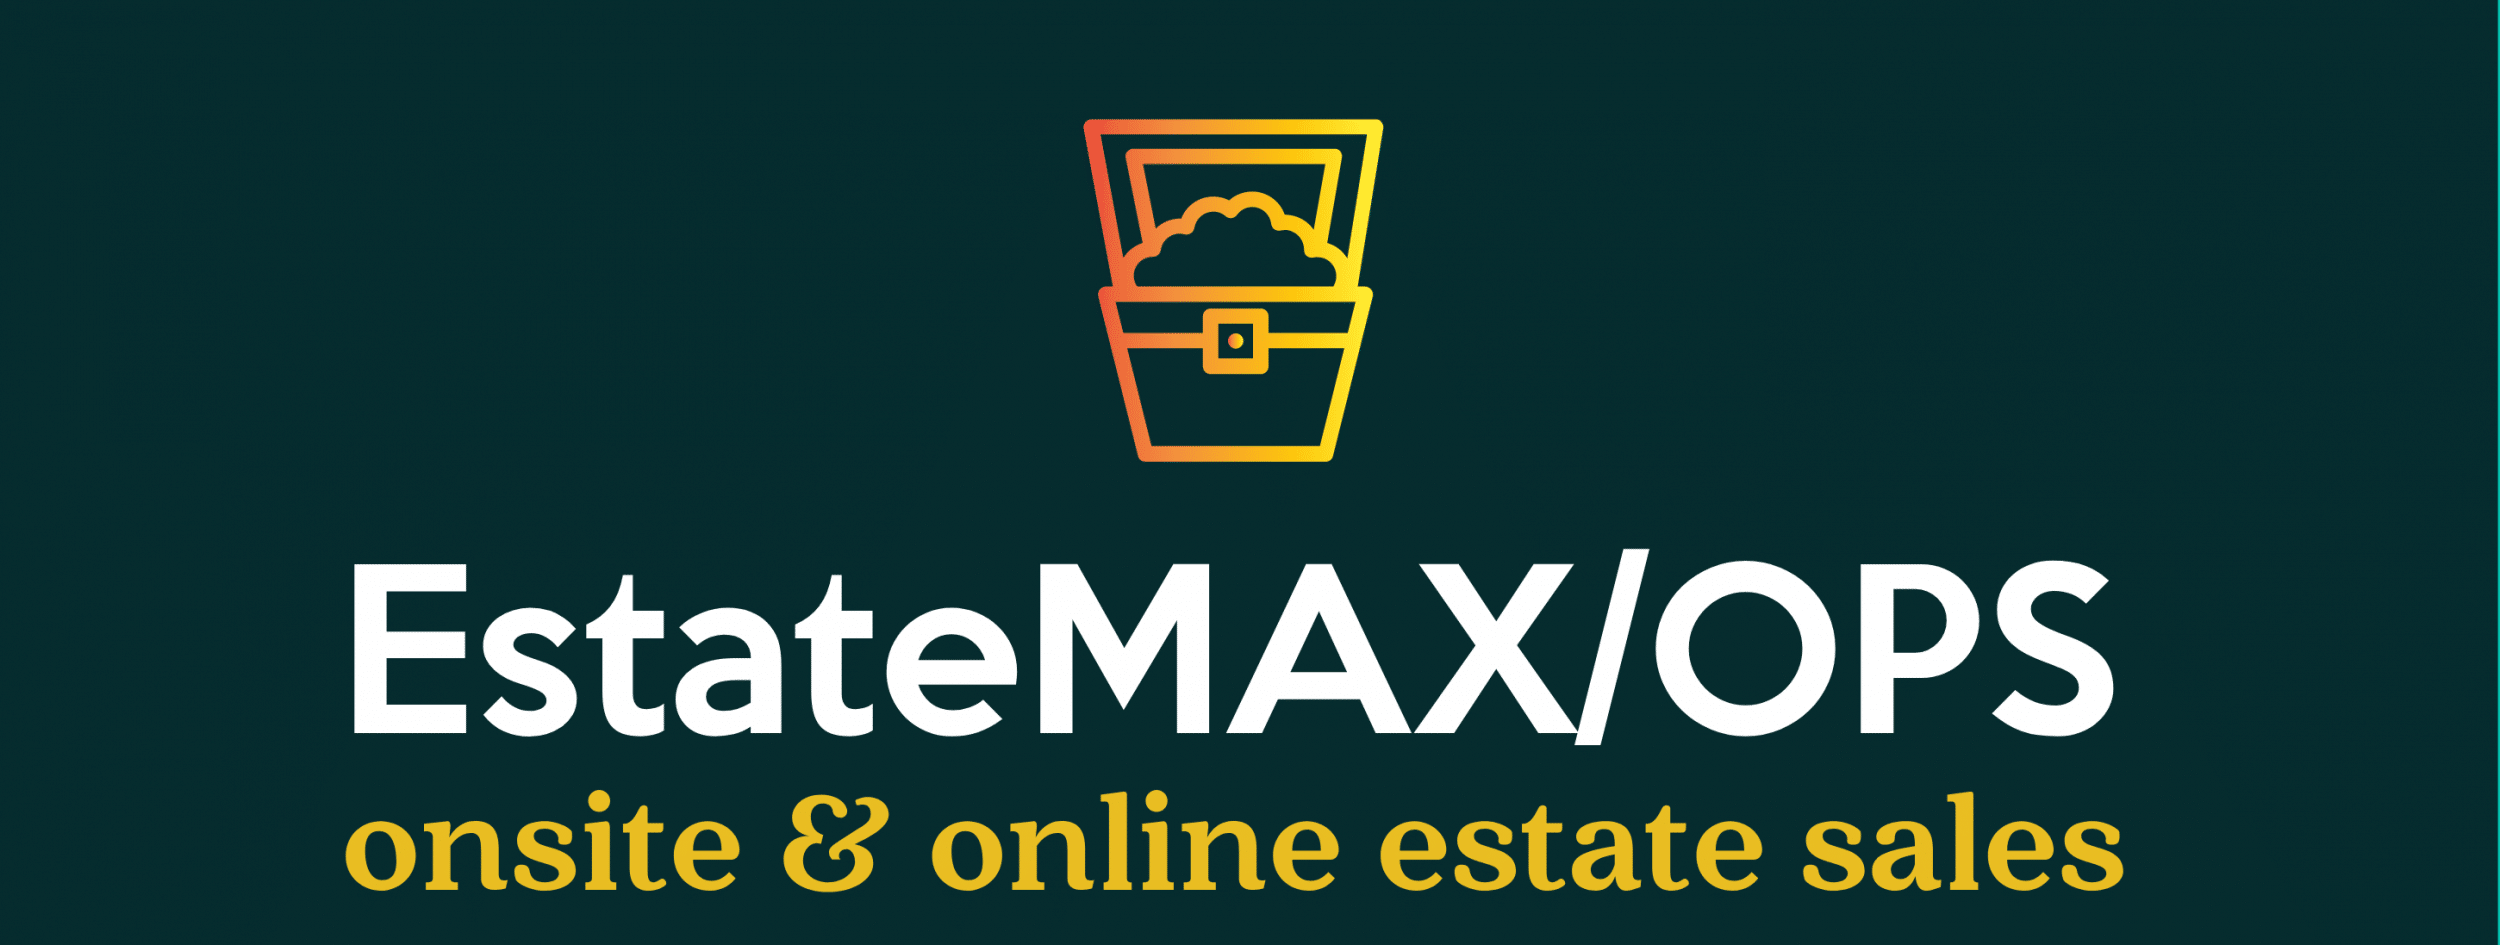 EstateMax/OPS : Onsite & Online Estate & Downsizing Sales for Seniors & Boomers in Transition, Estates-  Probate, Trusts